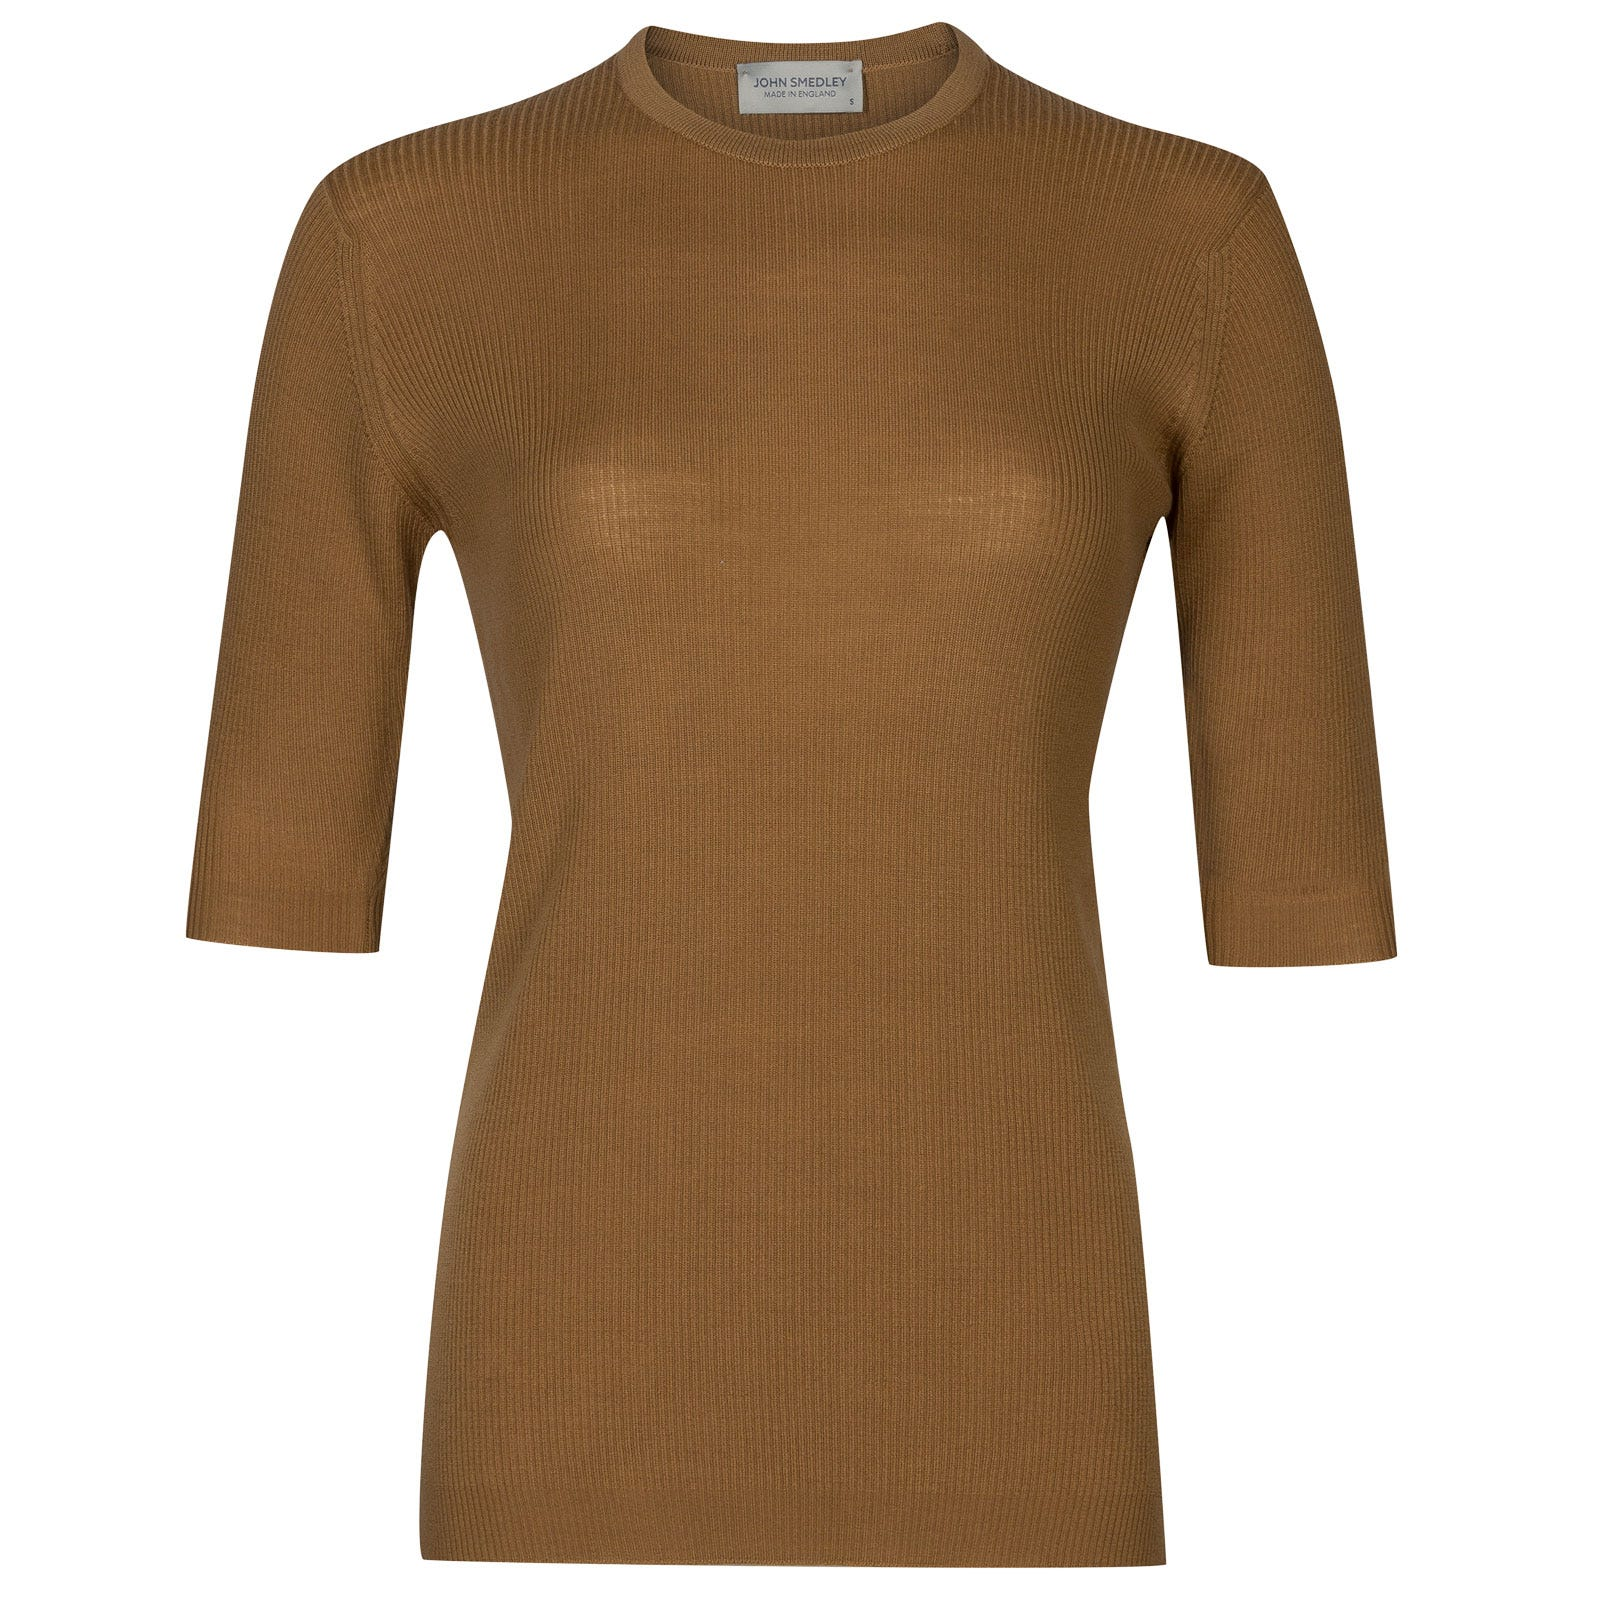 John Smedley wilis Merino Wool Sweater in Camel-XL